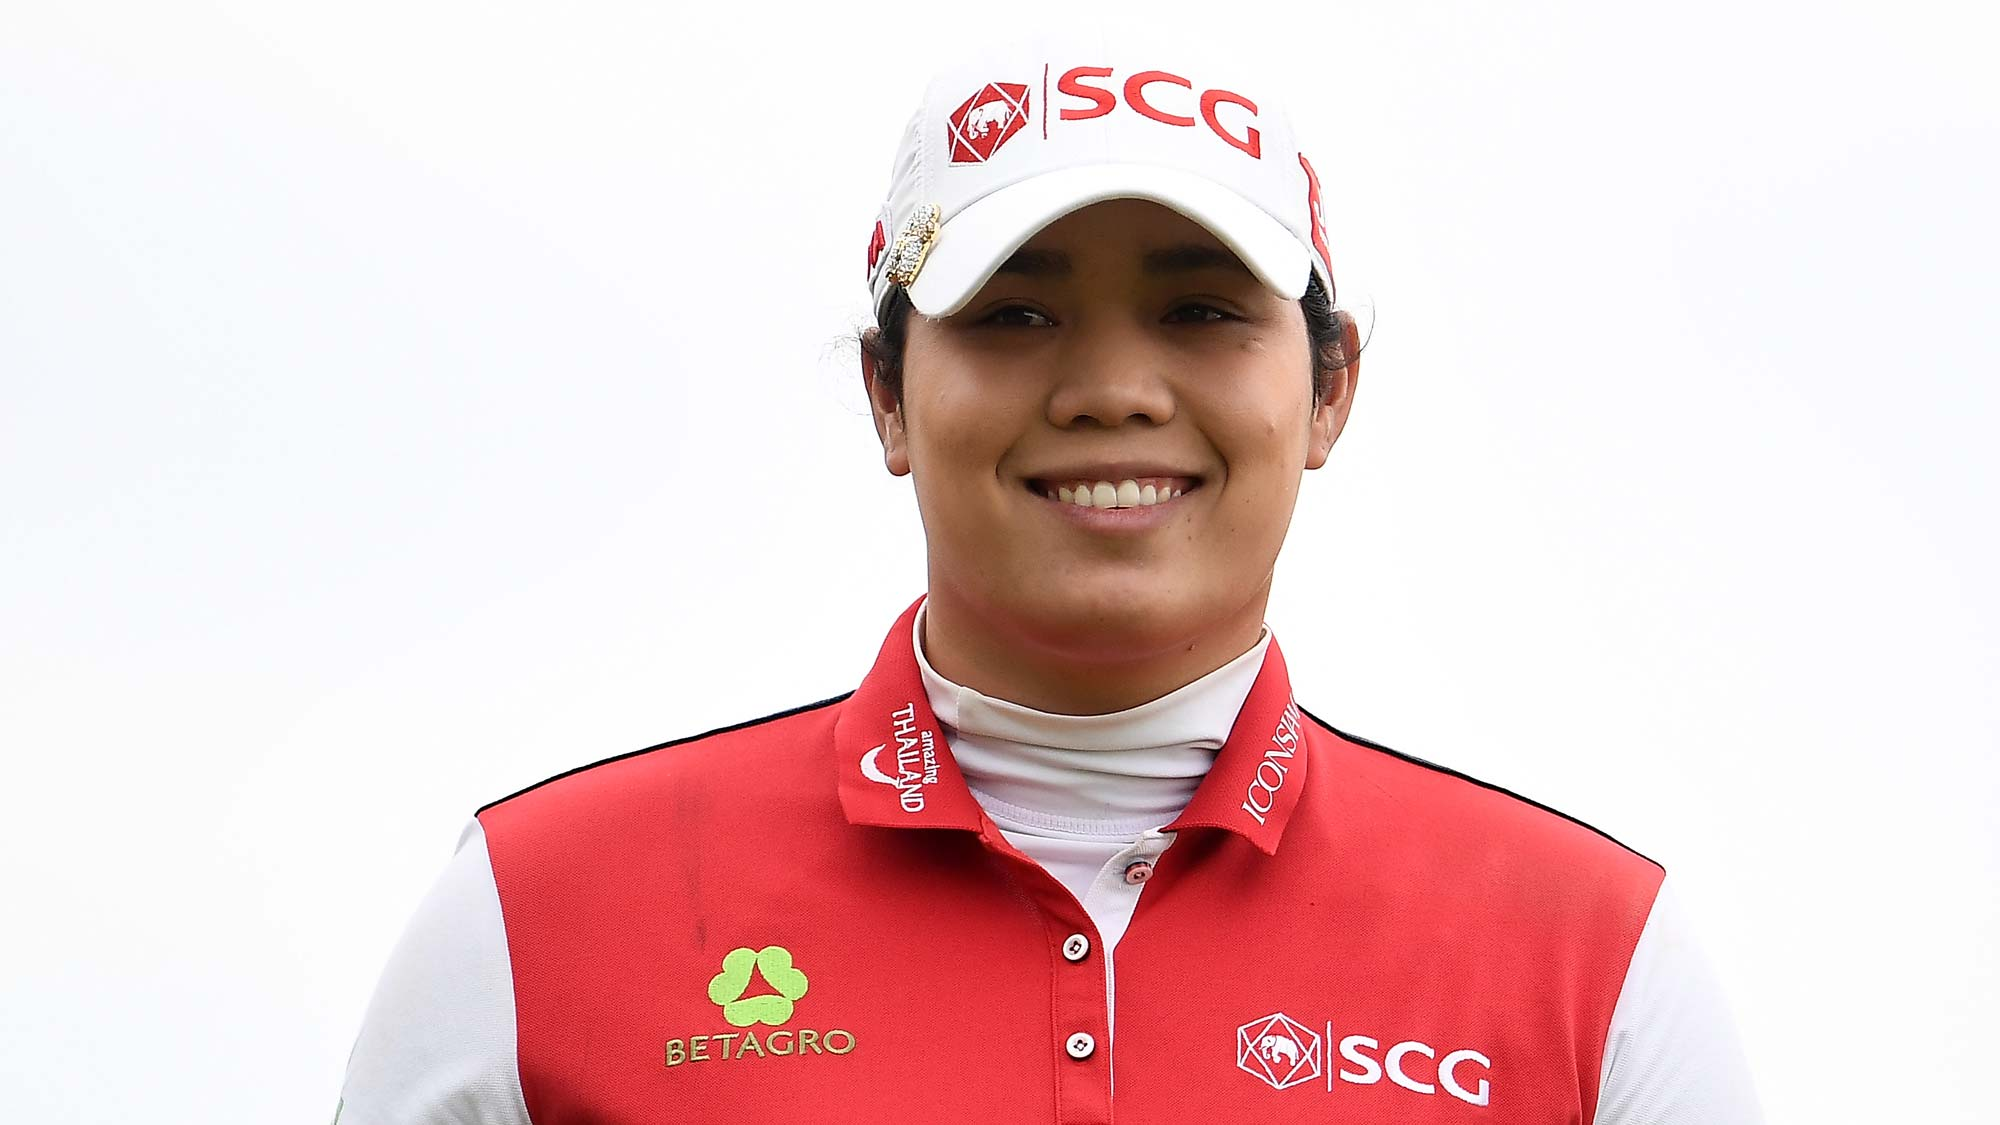 Ariya Jutanugarn of Thailand walks off the third tee during the third round of the KPMG PGA Championship